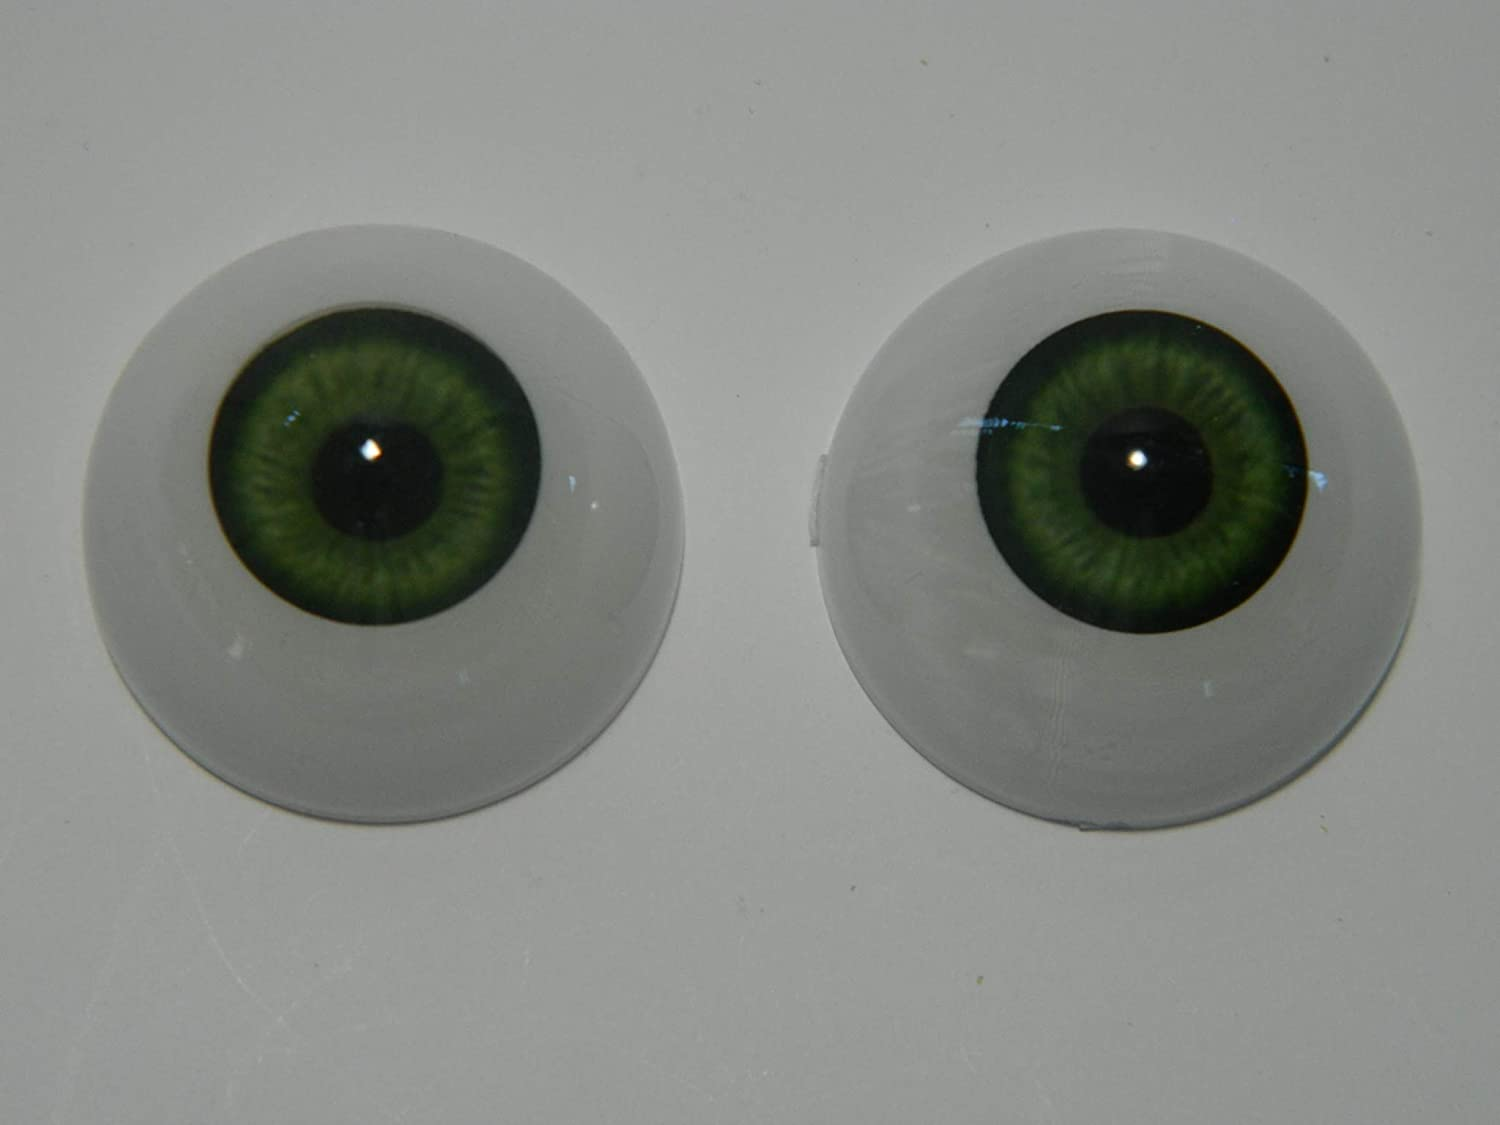 Pair of Realistic Life Size Acrylic Half Round Hollow Back Eyes for Halloween PROPS DOLLS or Bears FL02 MASKS